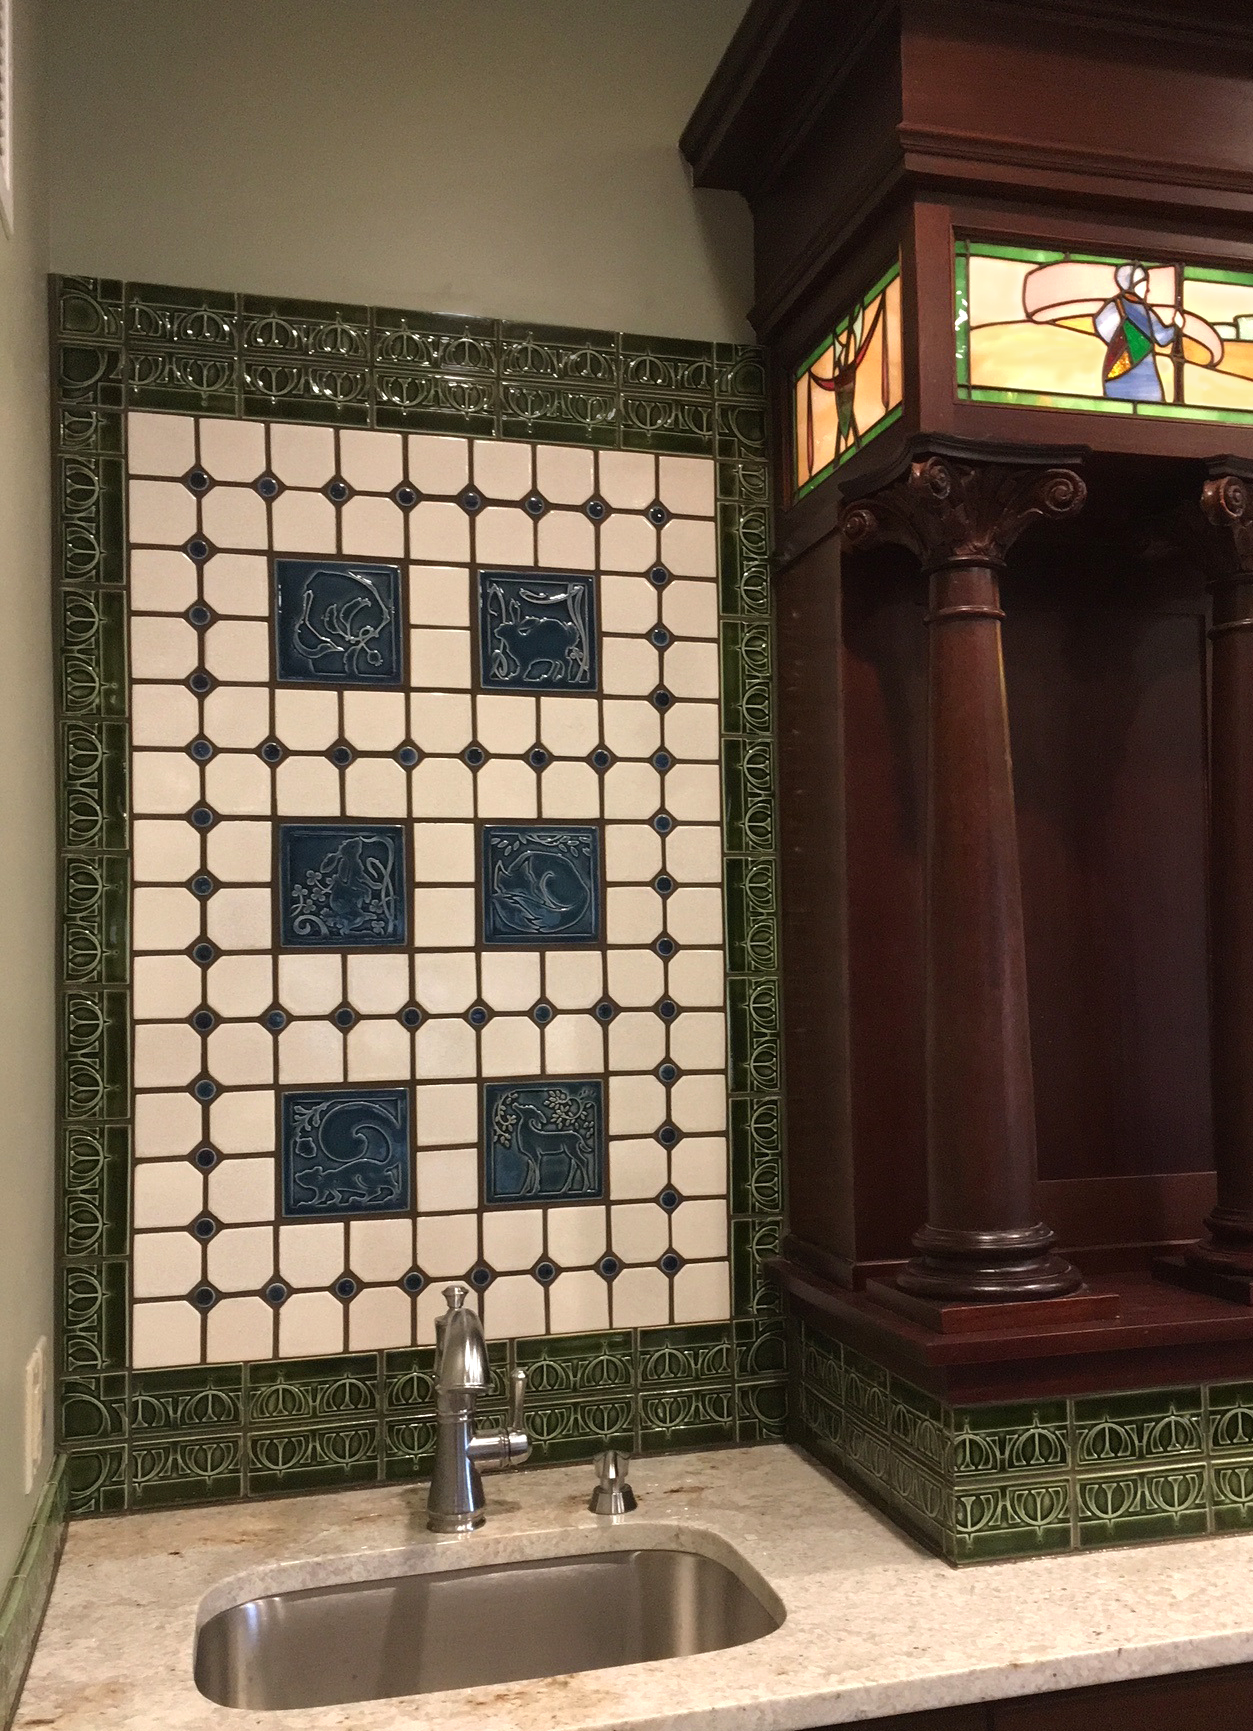 New Glarus tiled bar back